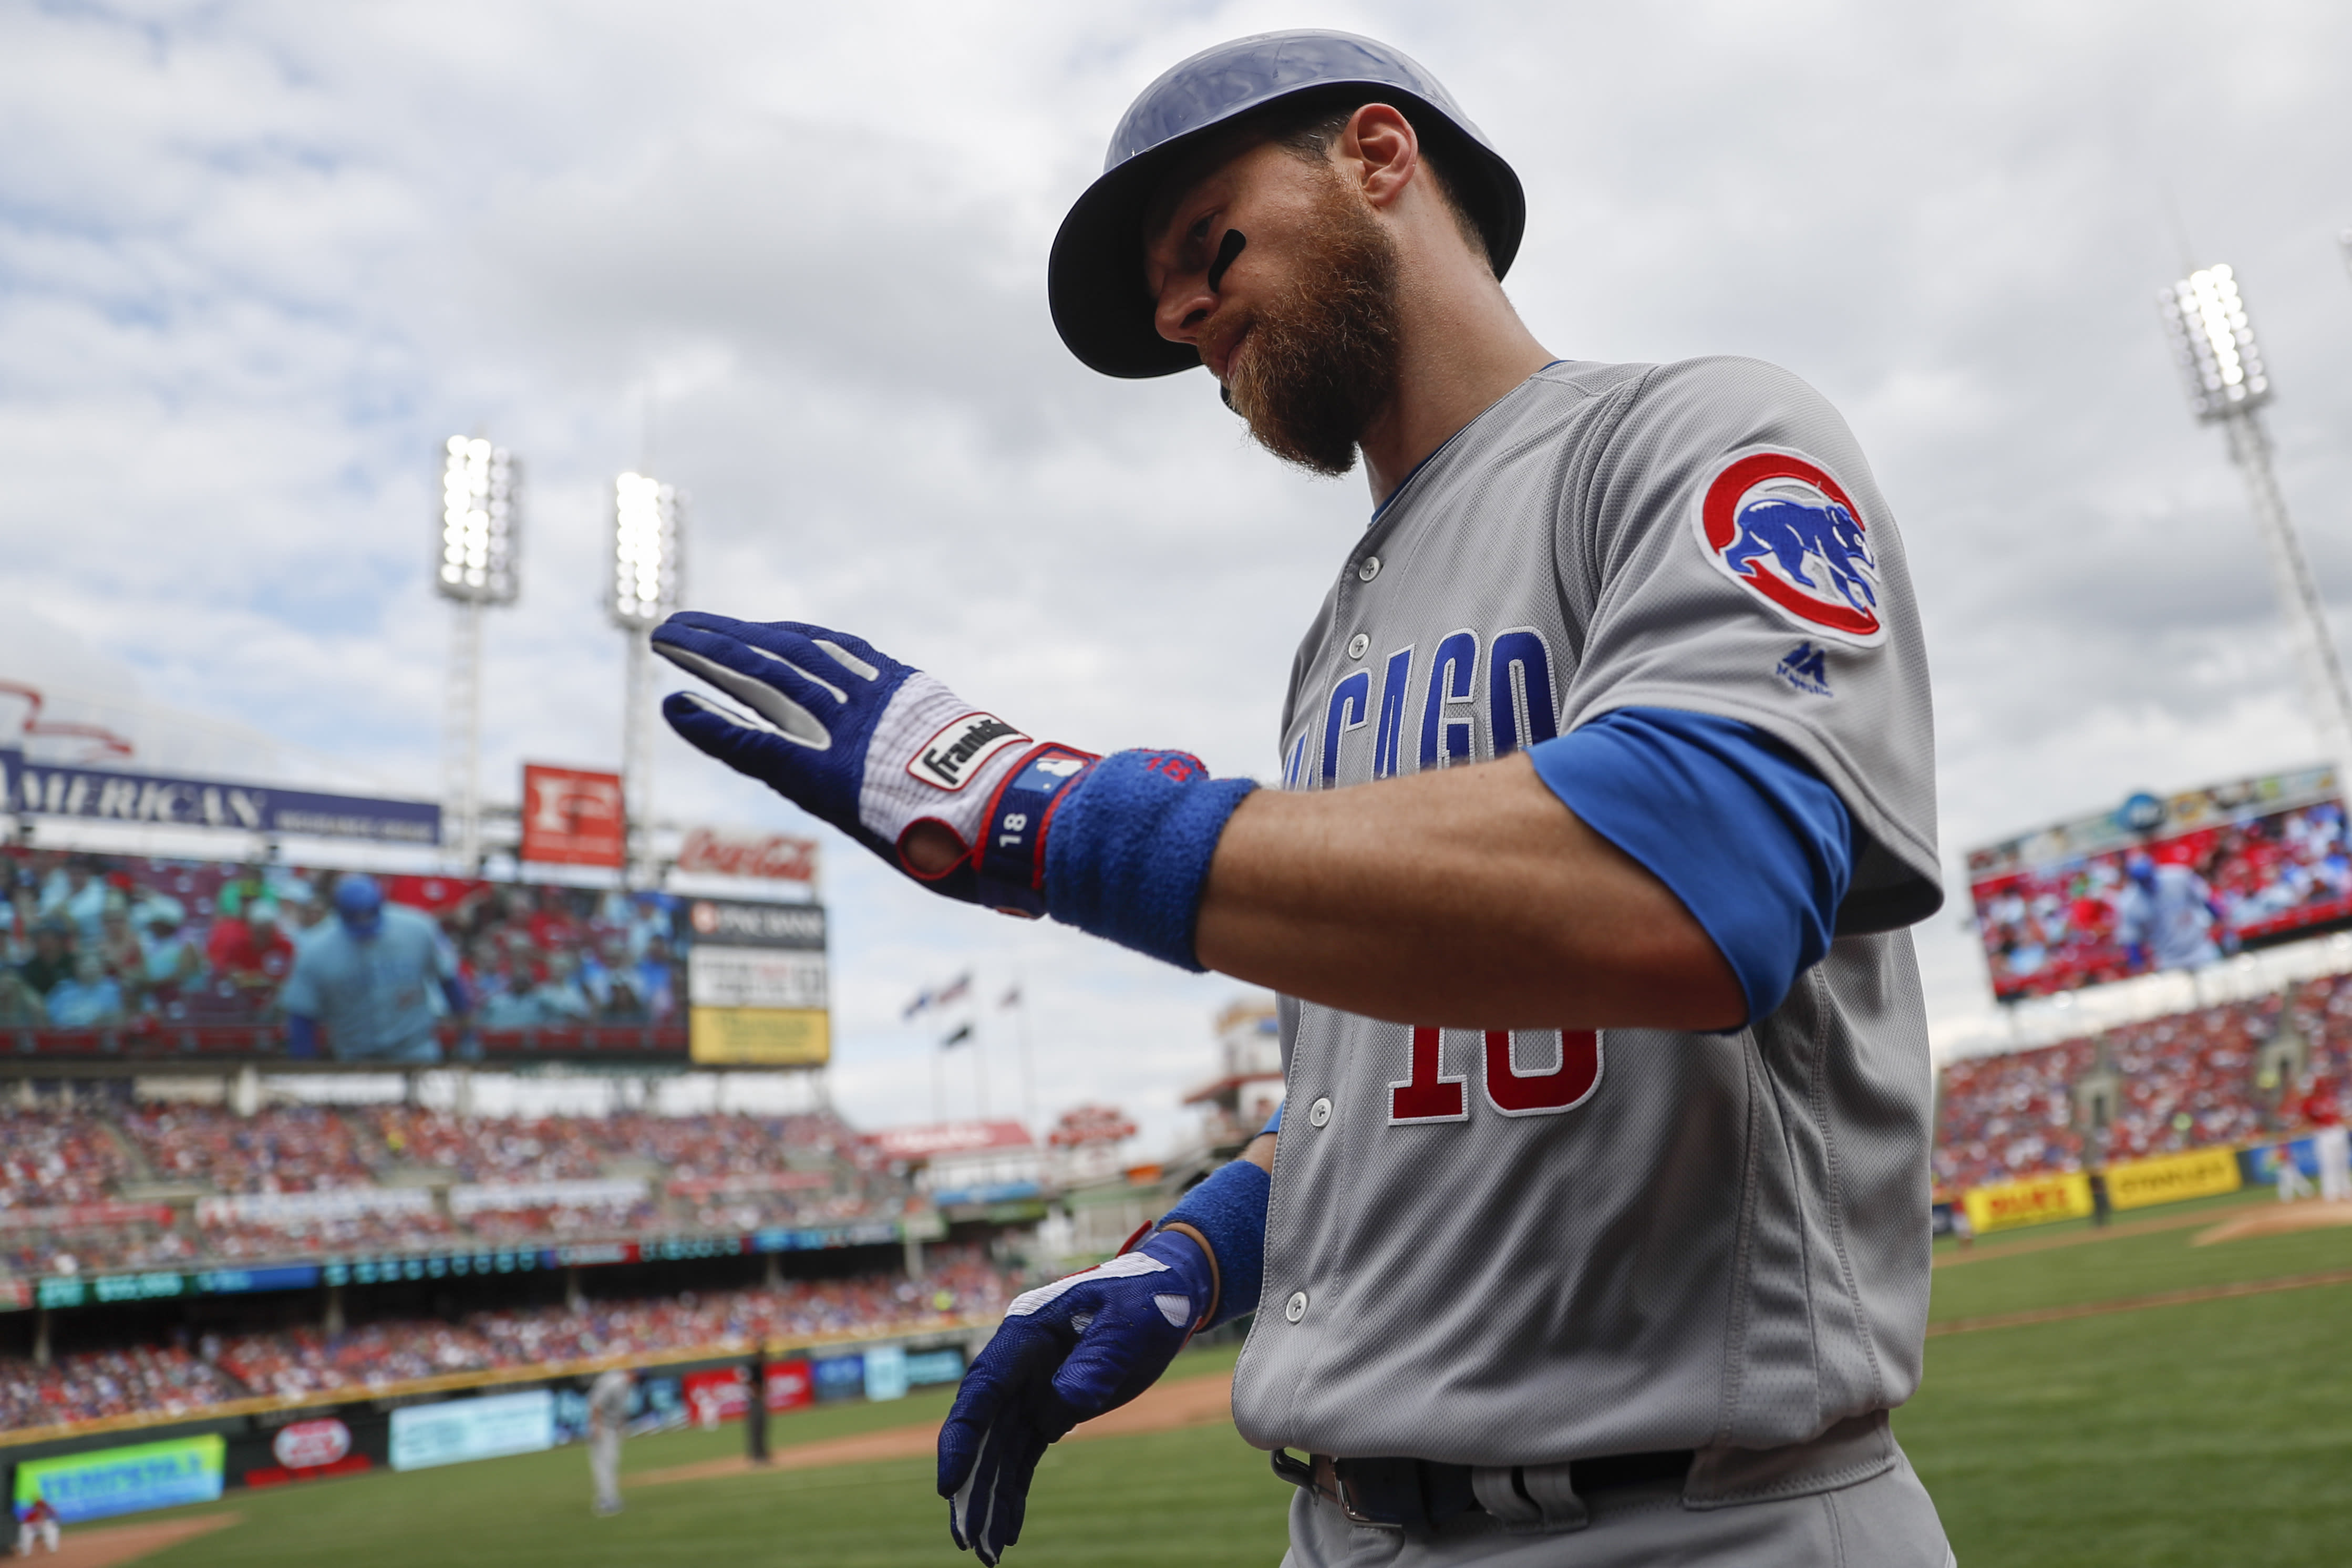 Ben Zobrist unleashed the perfect burn on an umpire to land his first-ever ejection